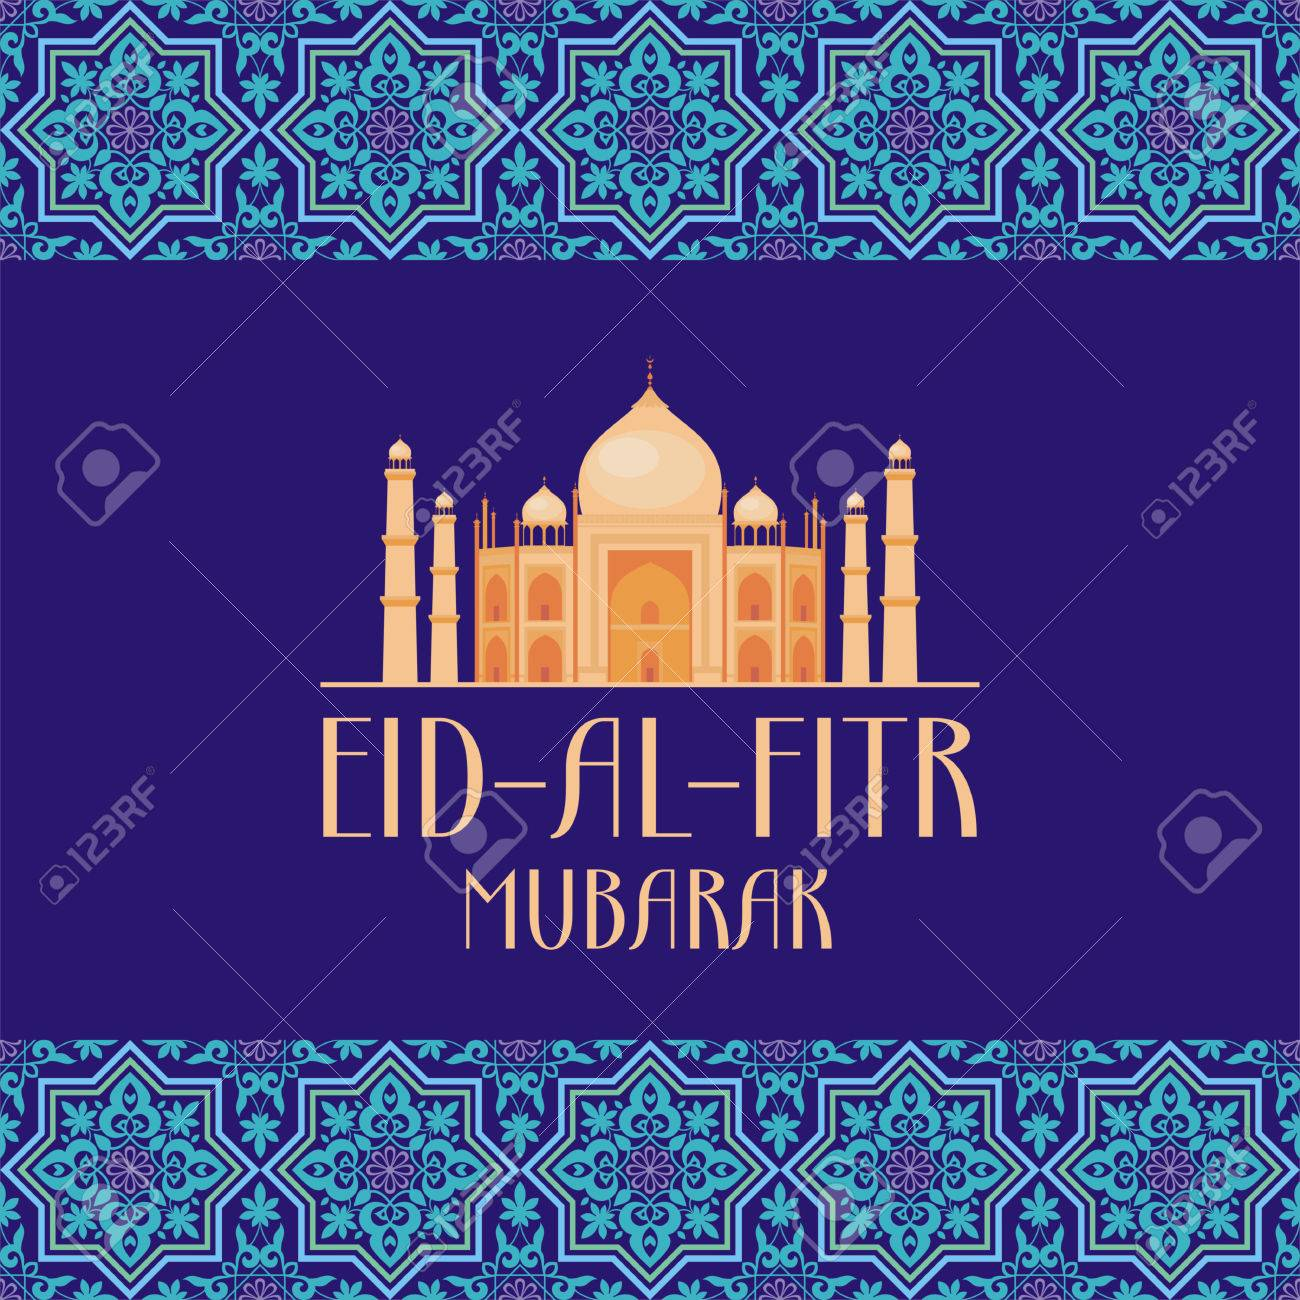 Eid Al Fitr Greeting Card With The Image Of An Mosque Royalty Free